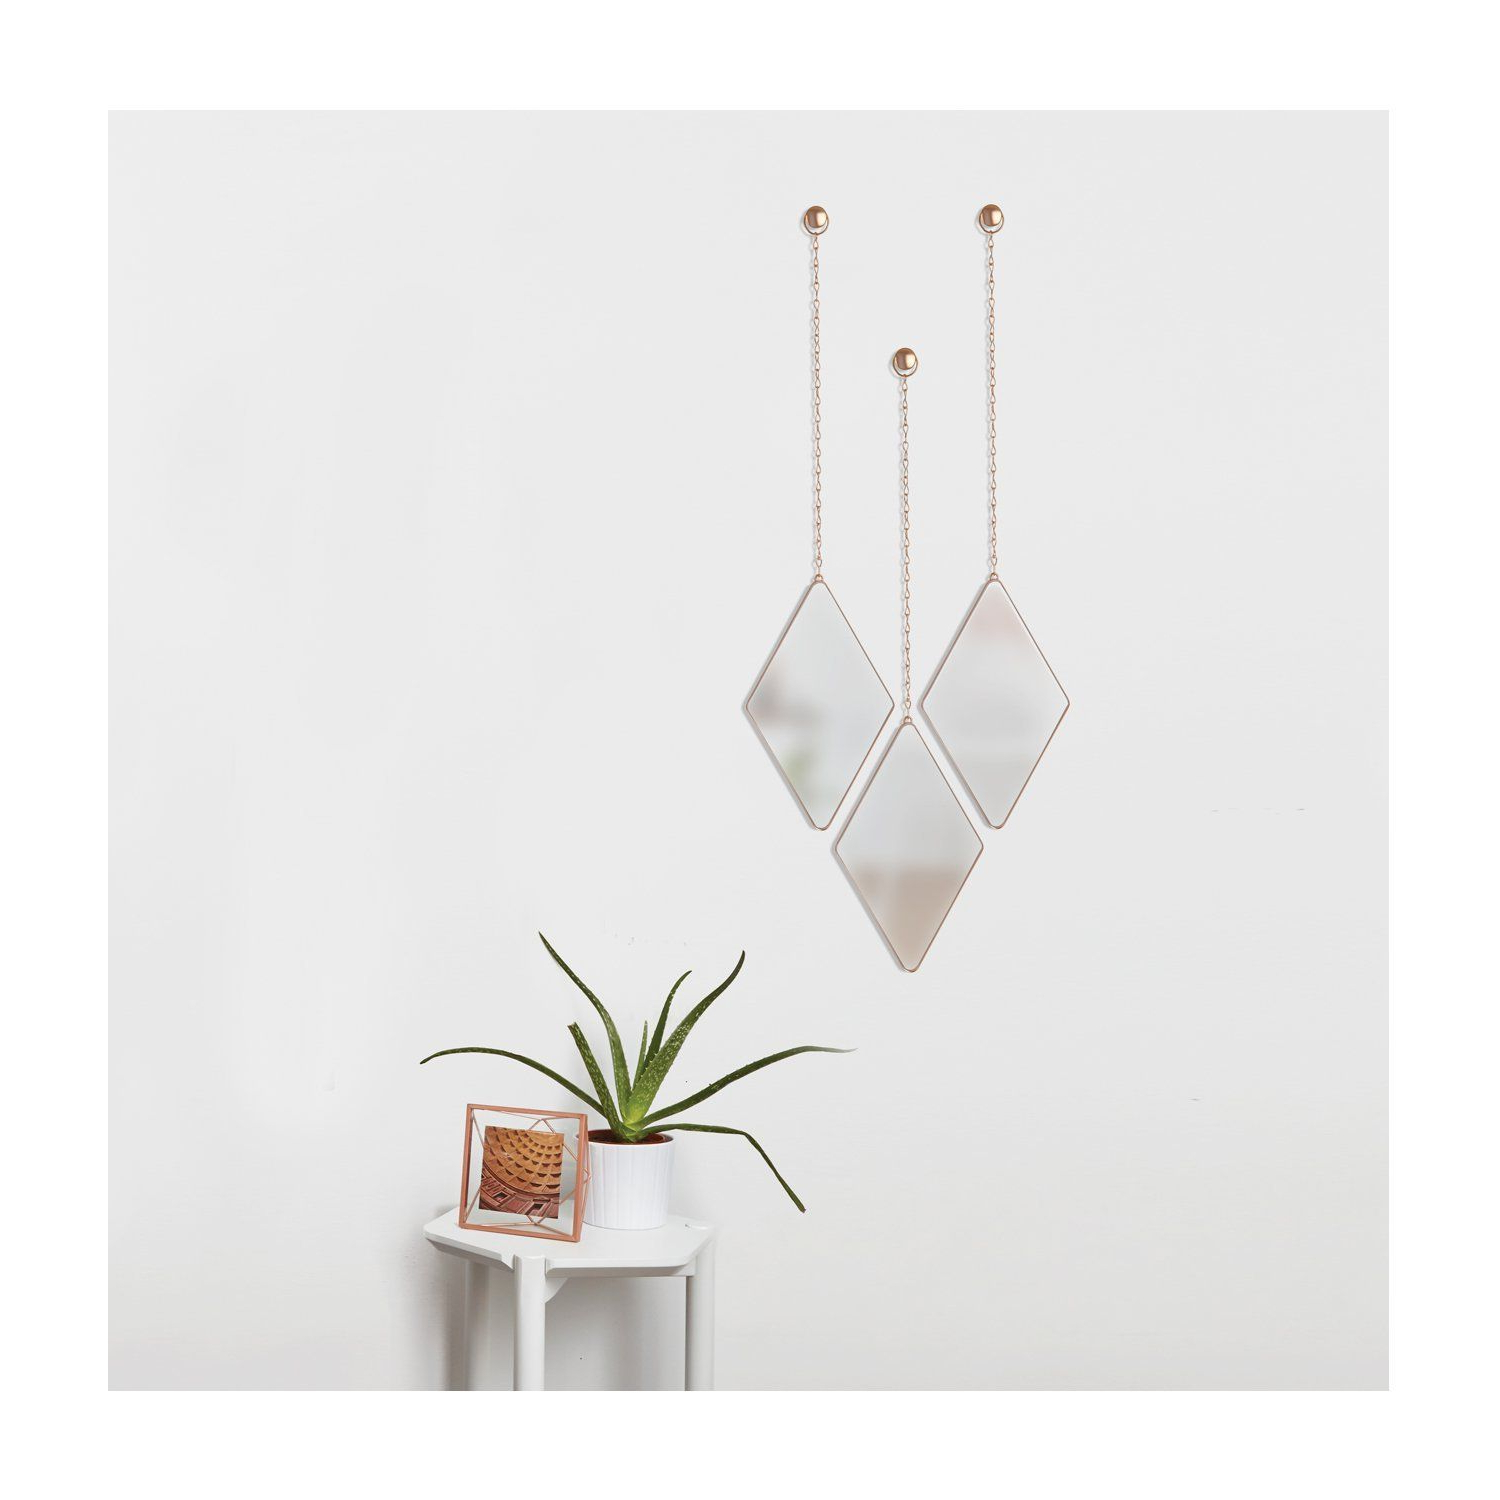 Newest 3 Piece Dima Hanging Modern & Contemporary Mirror Sets Pertaining To Amazon: Umbra Dima Mirrors (Set Of 3), Copper: Home & Kitchen (View 15 of 20)